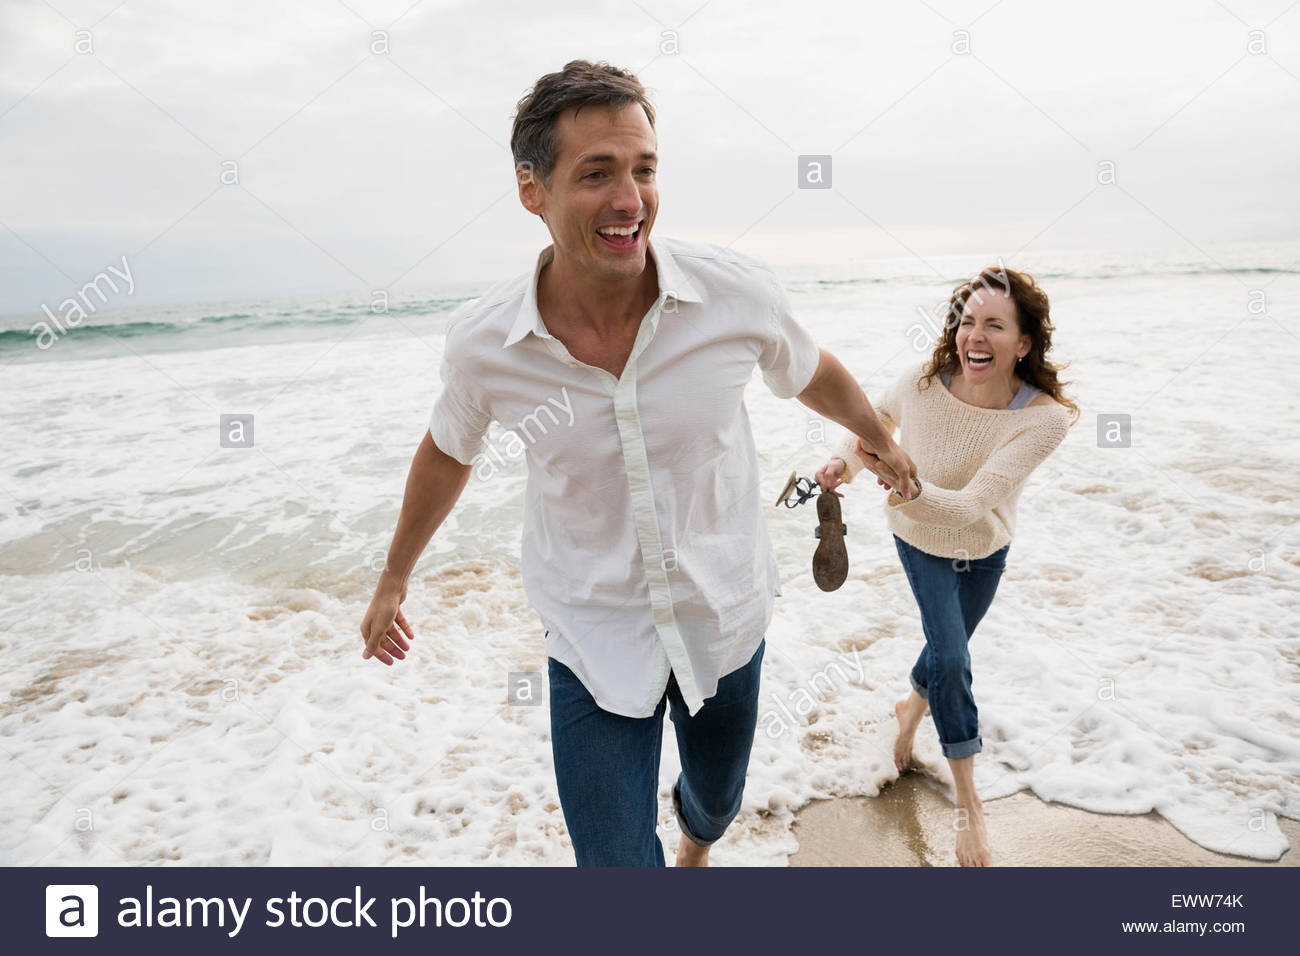 Playful couple playing in ocean surf - Stock Image